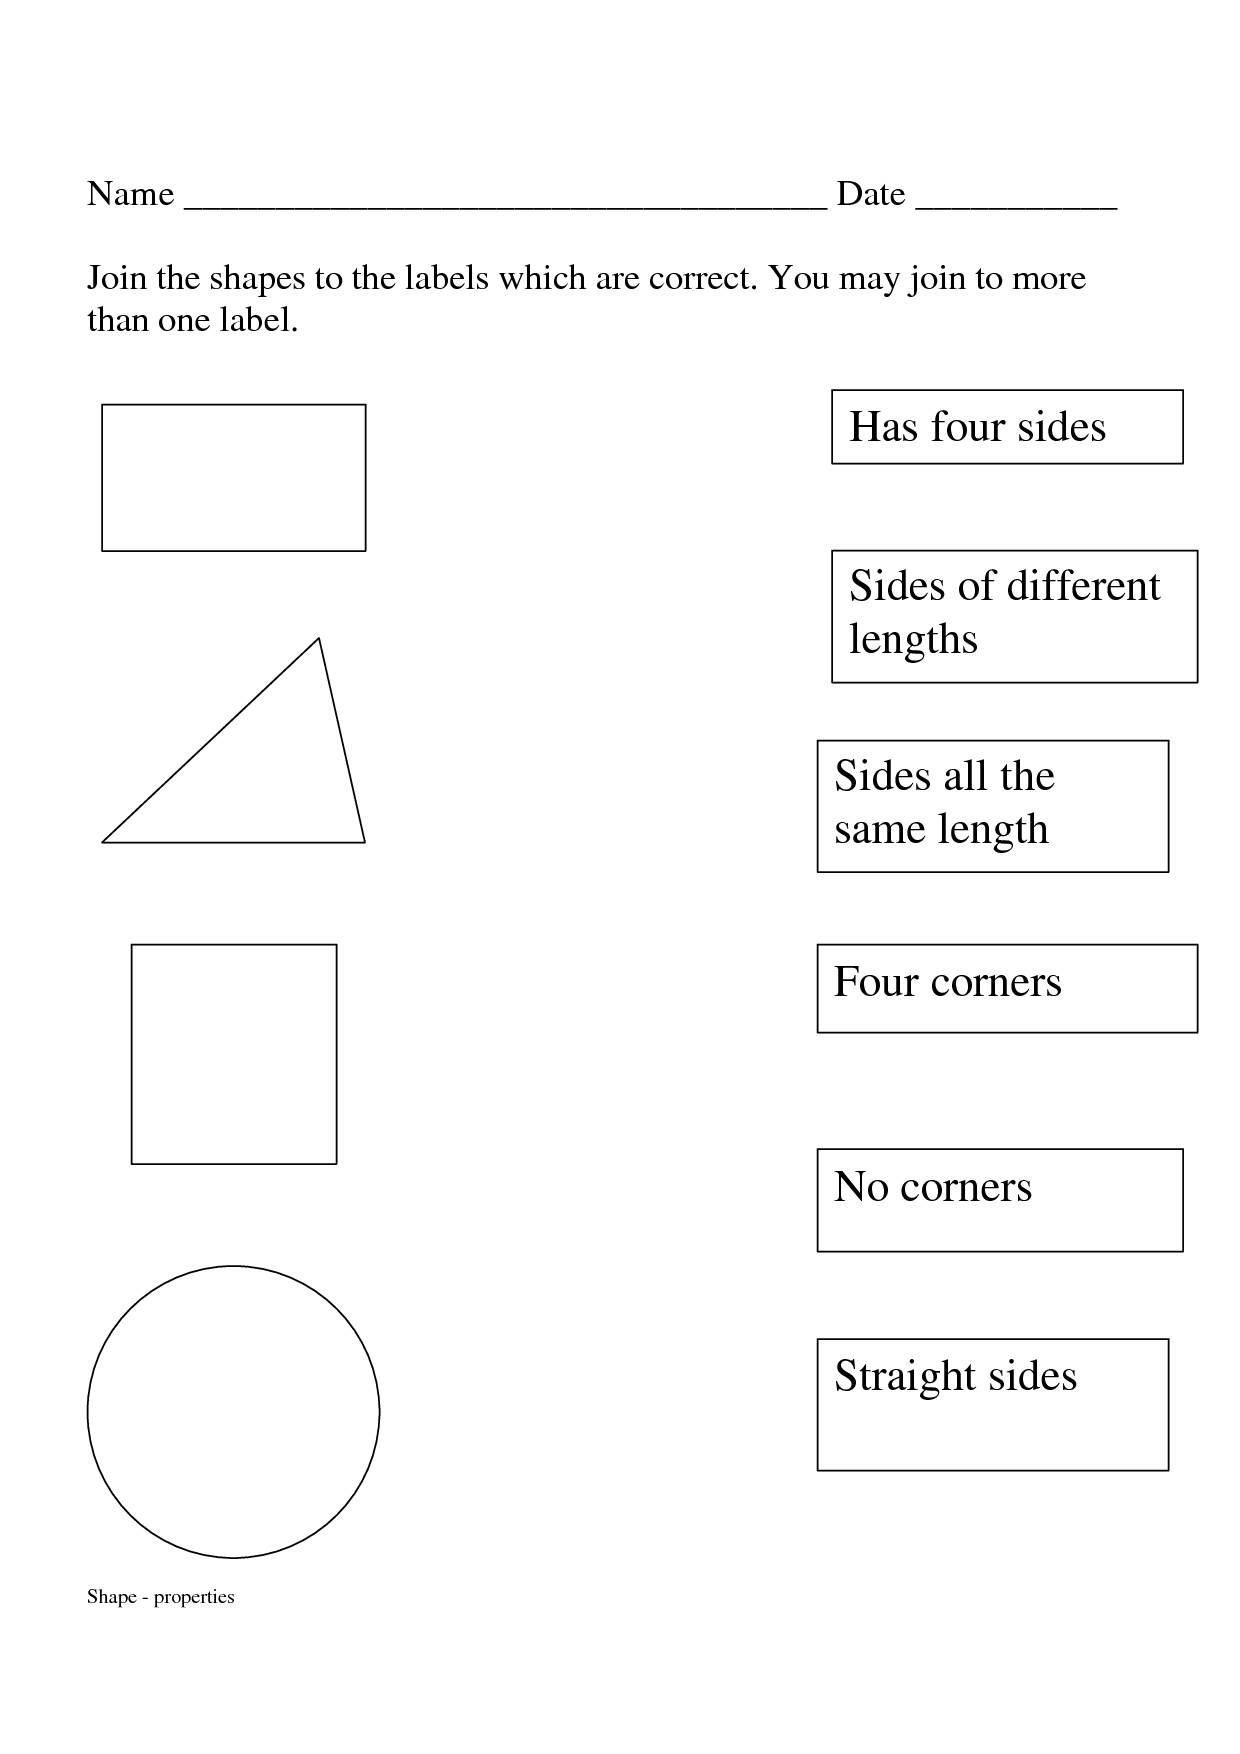 12 Best Images Of Names Of Shapes Worksheet With Sides